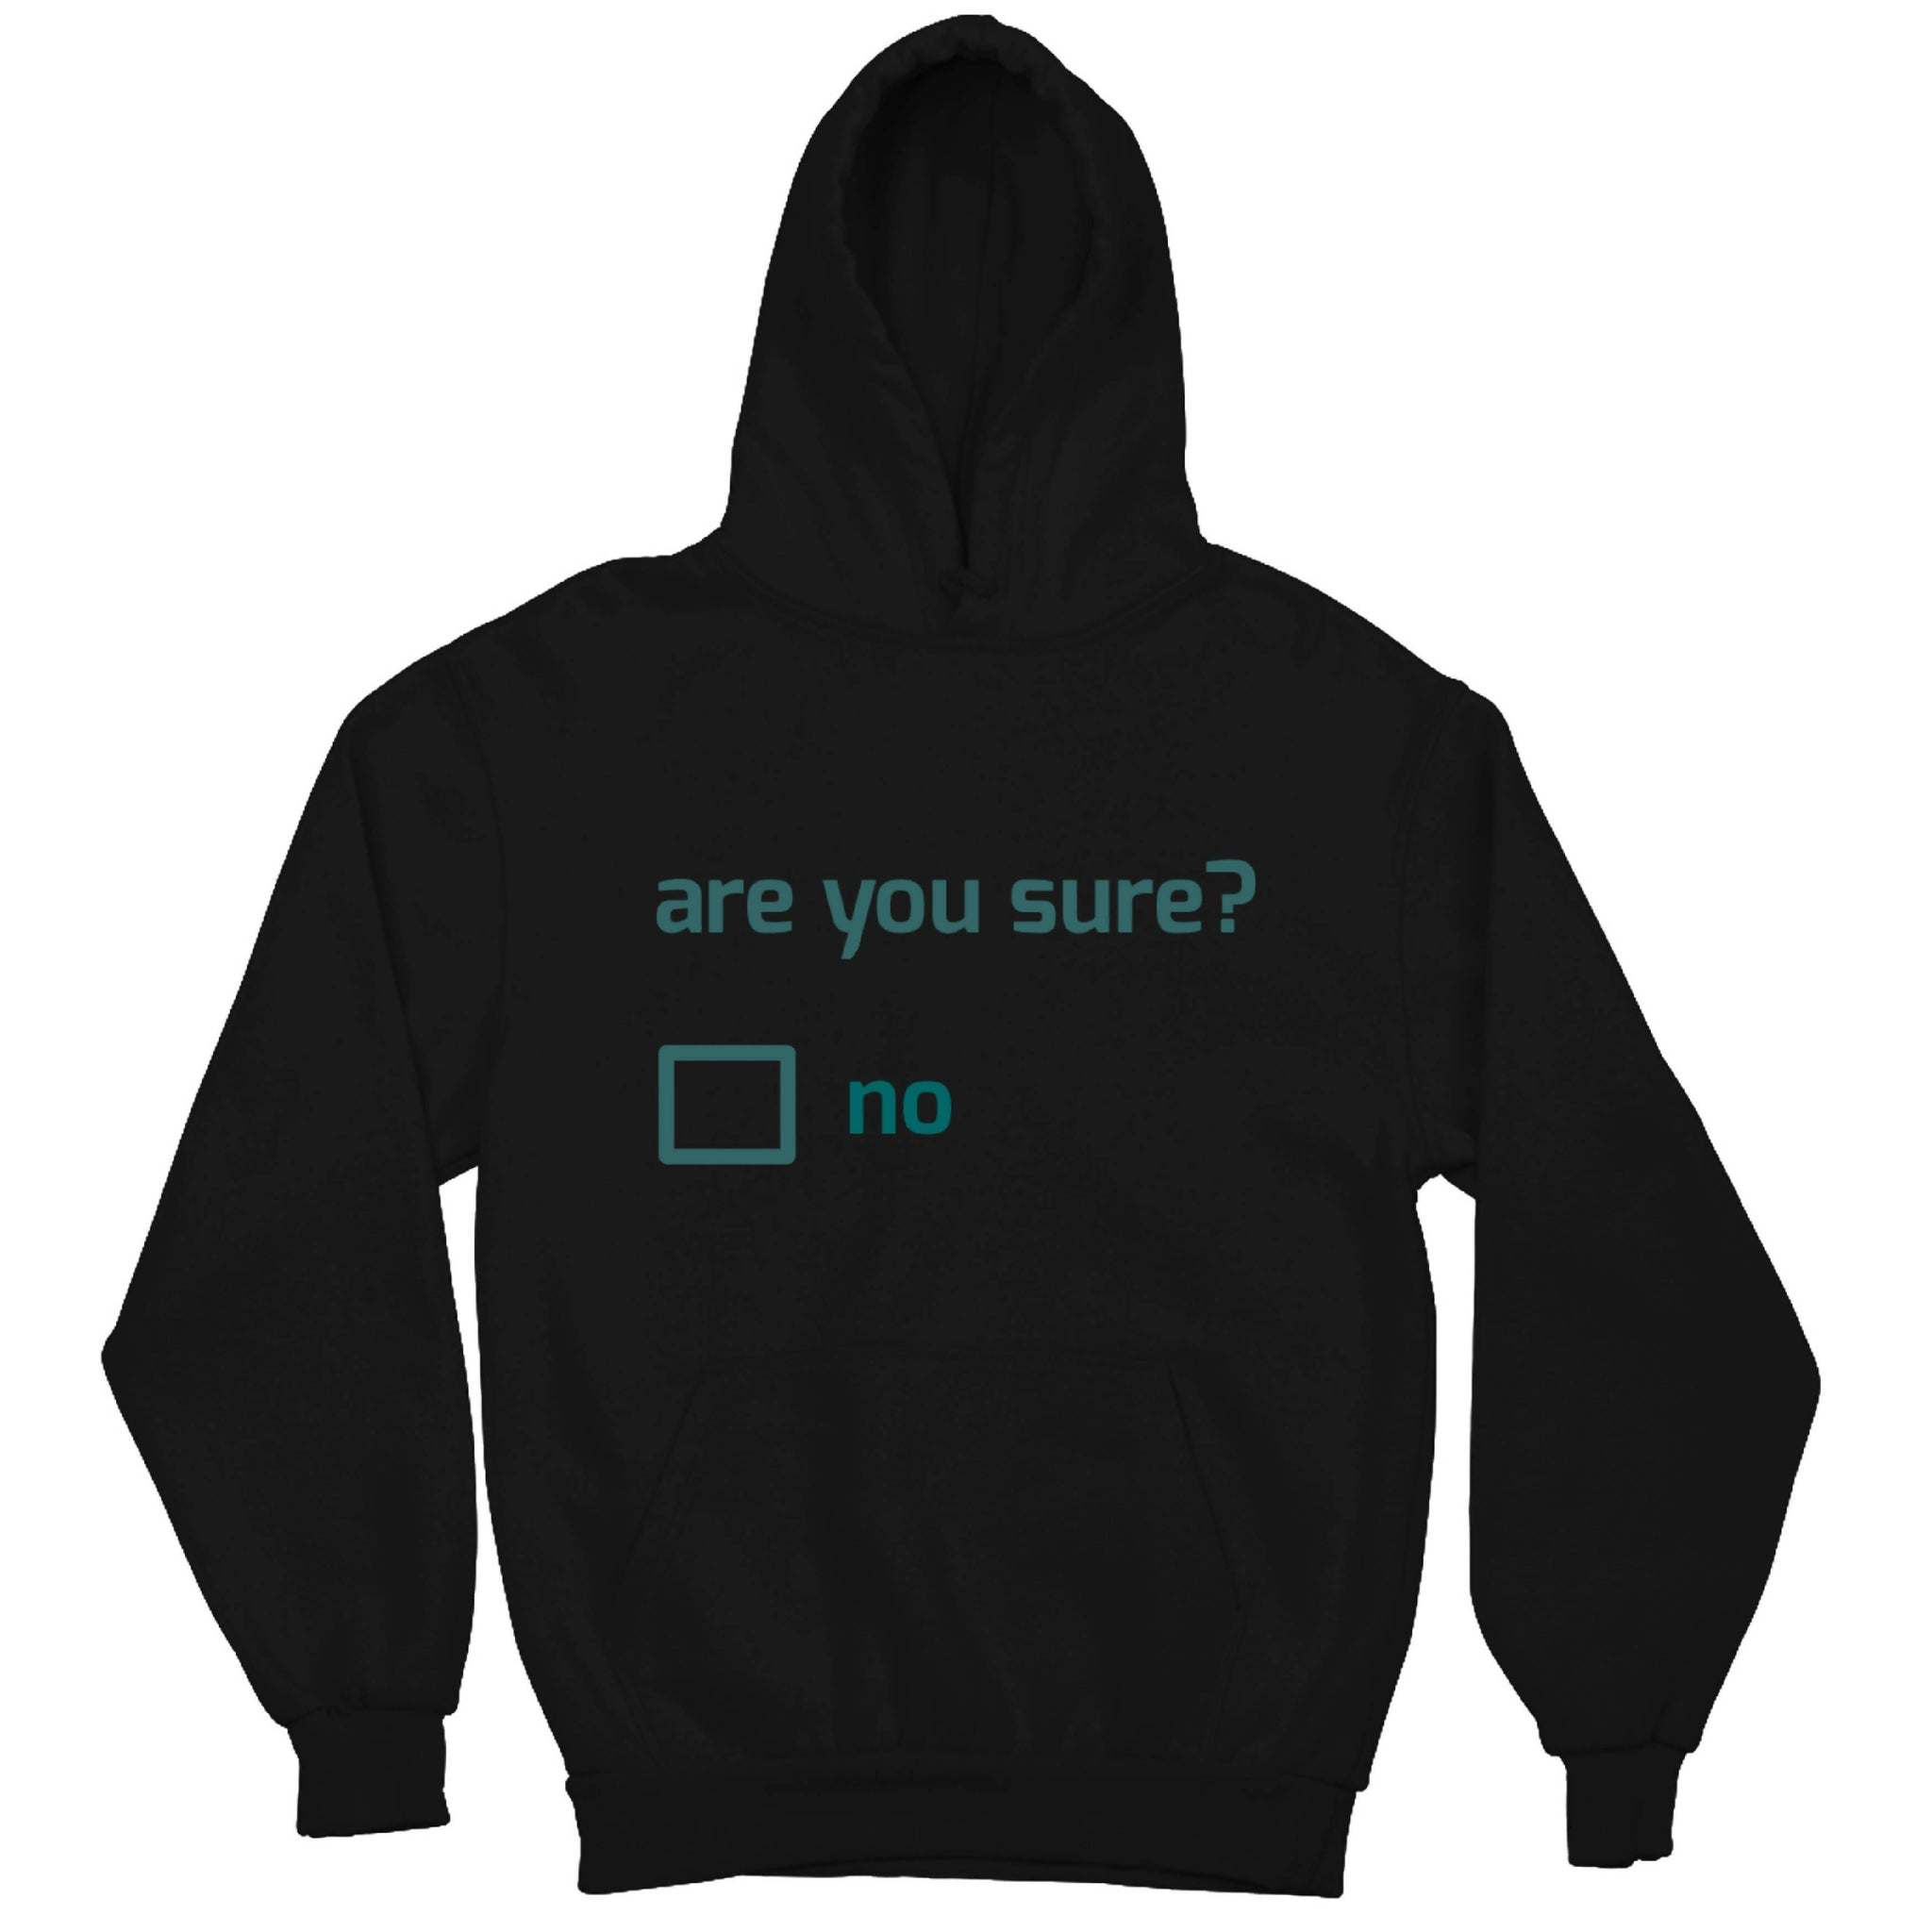 Are you sure? Hoodie